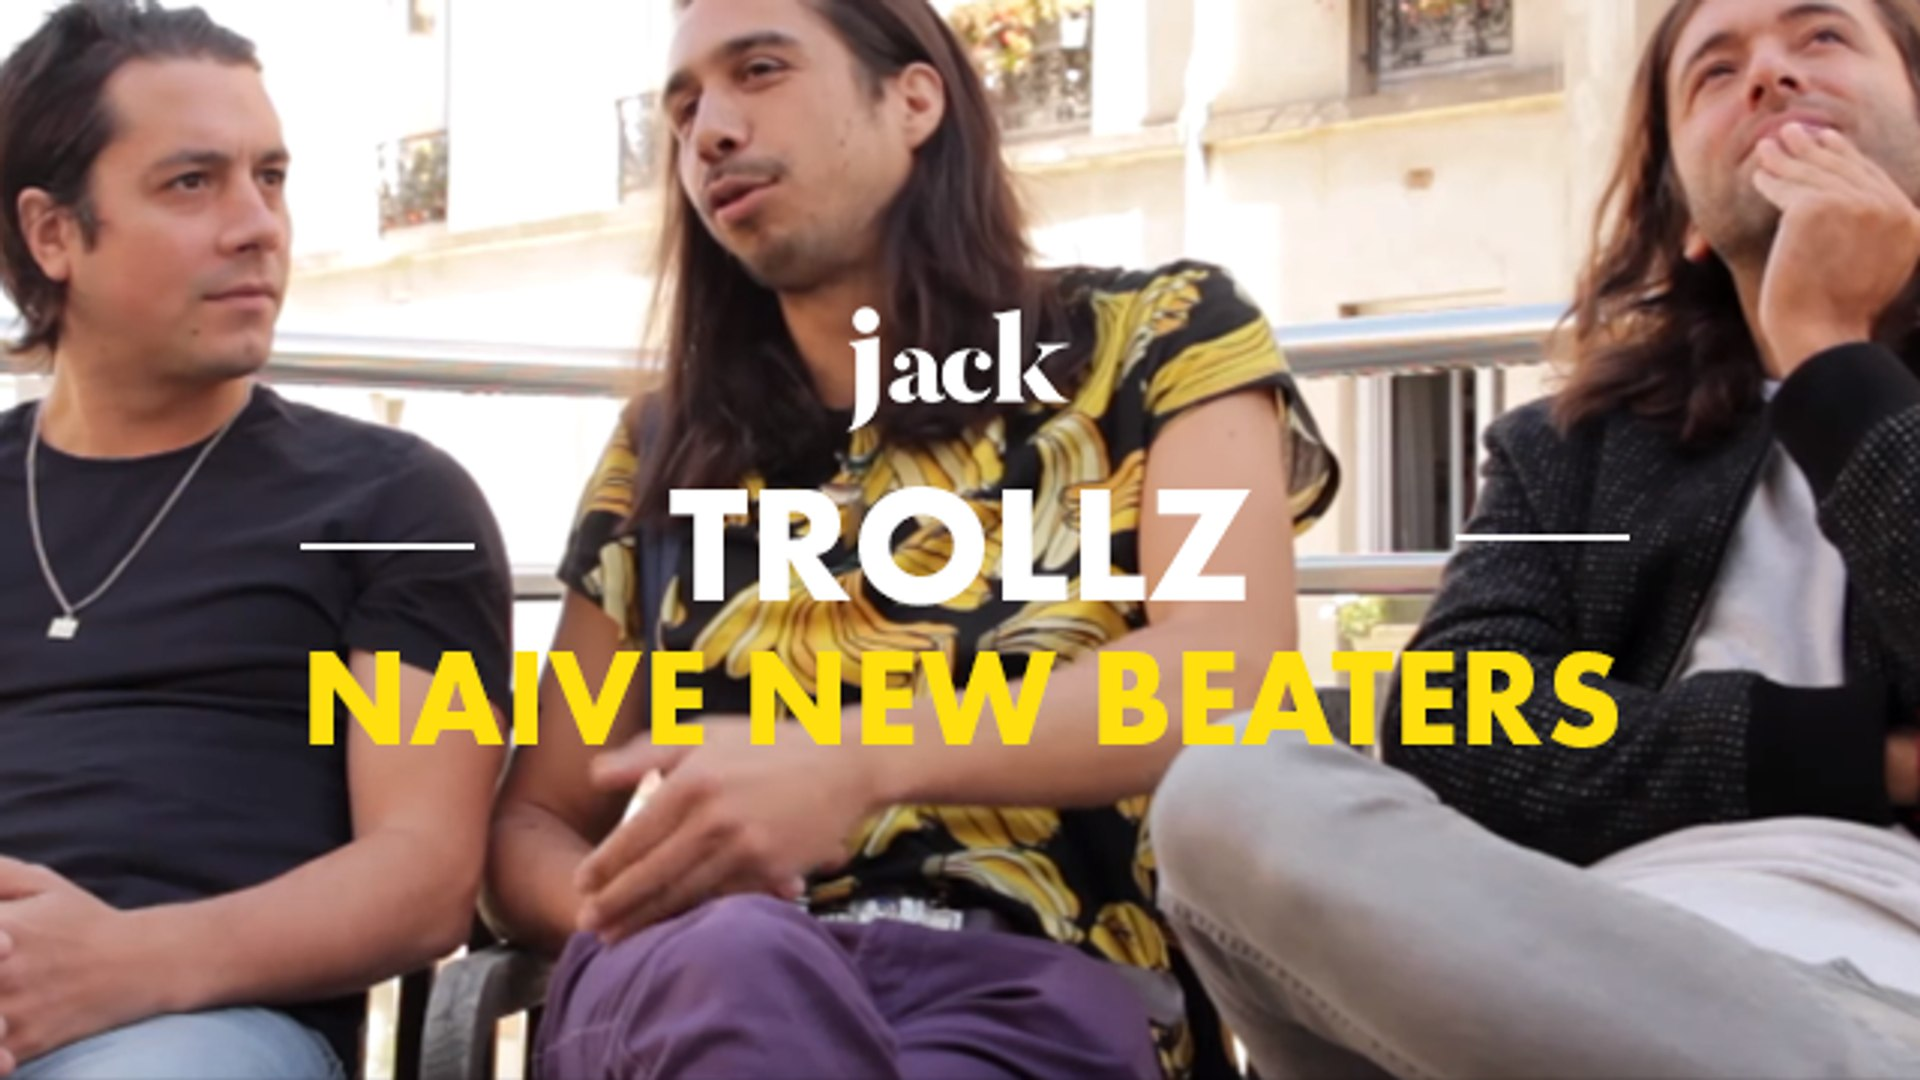 Naive New Beaters : « On essaye de groover black » – Trollz | JACK